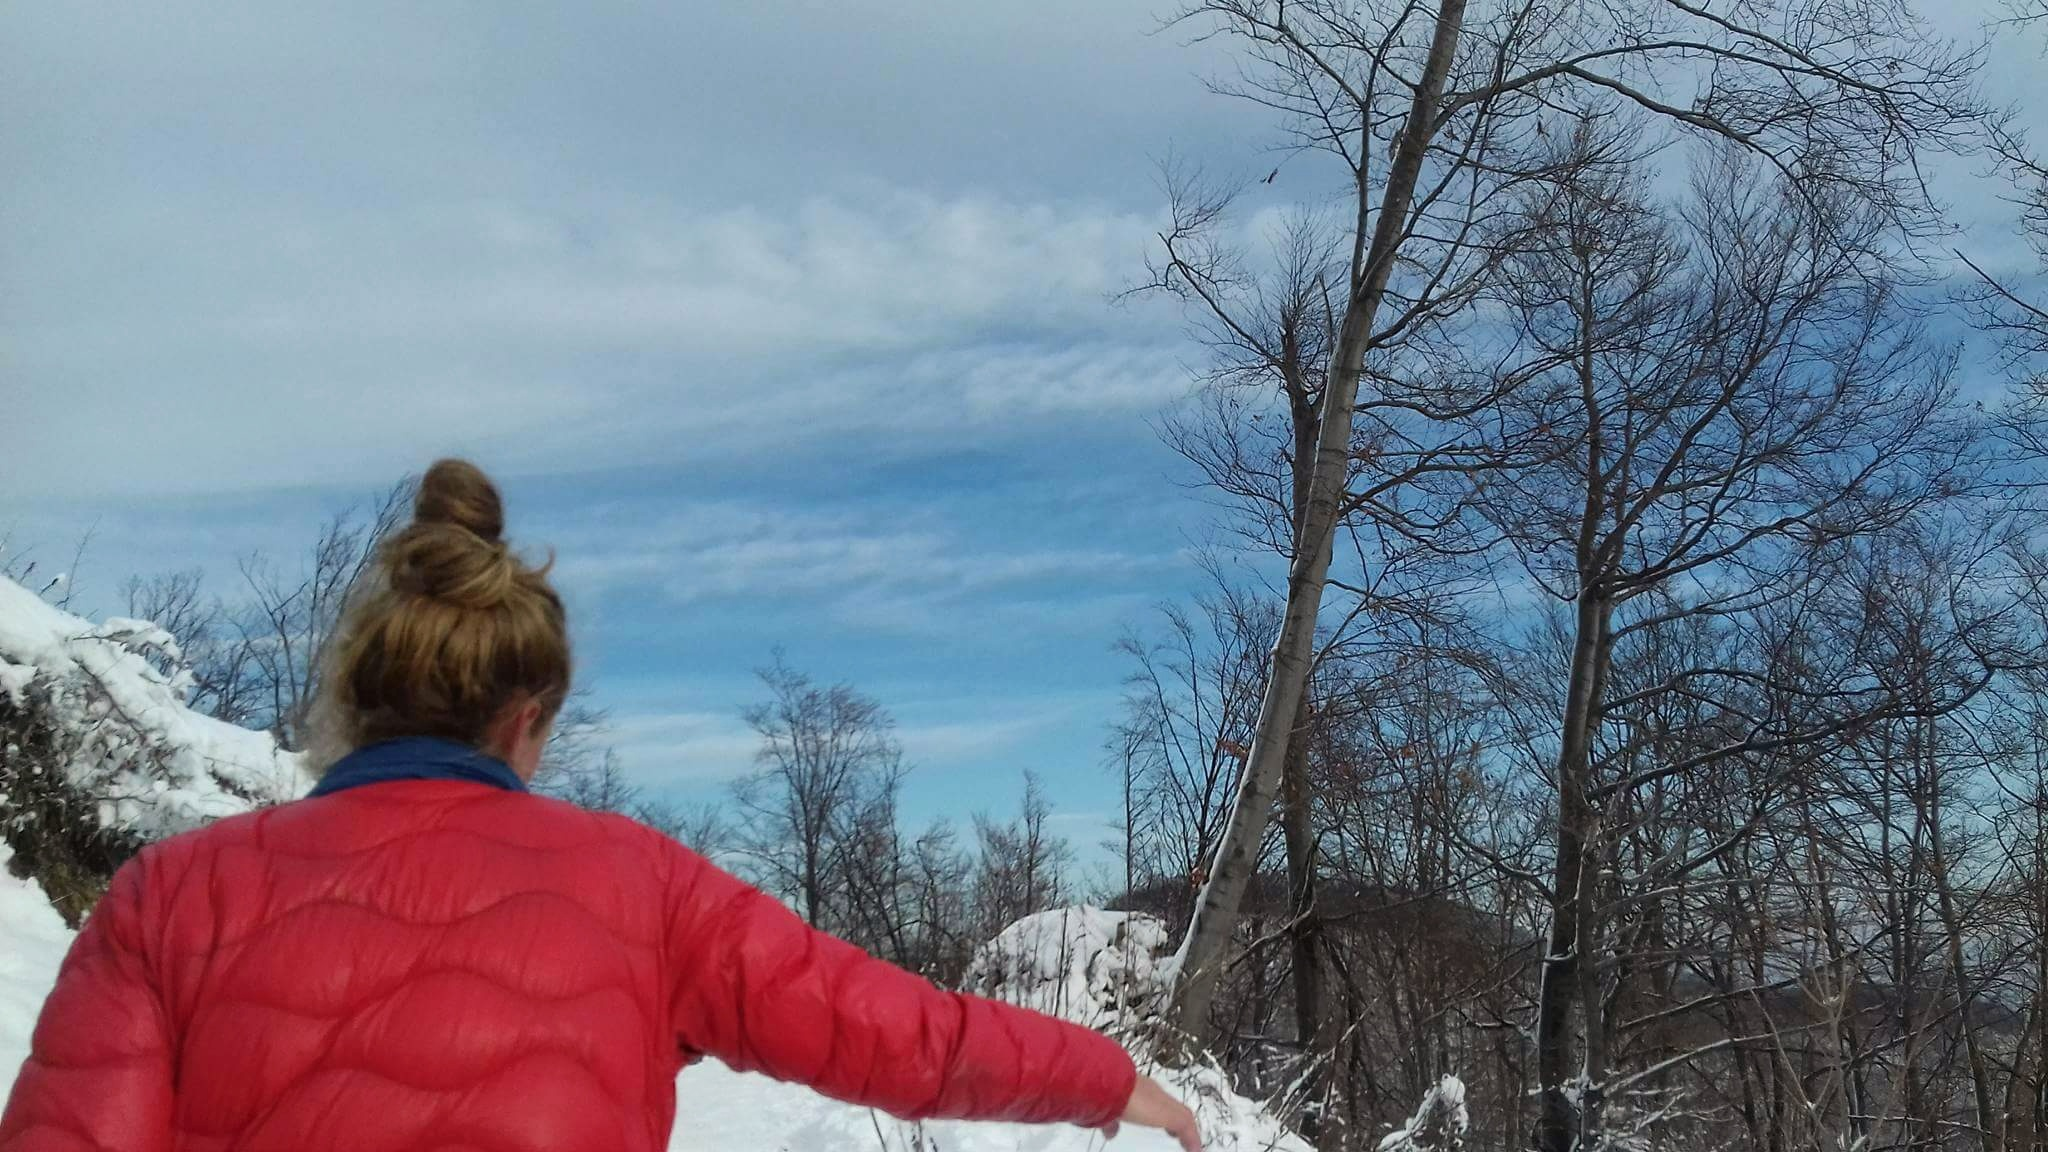 Hiking Medvednica in Snow | Looking back on February